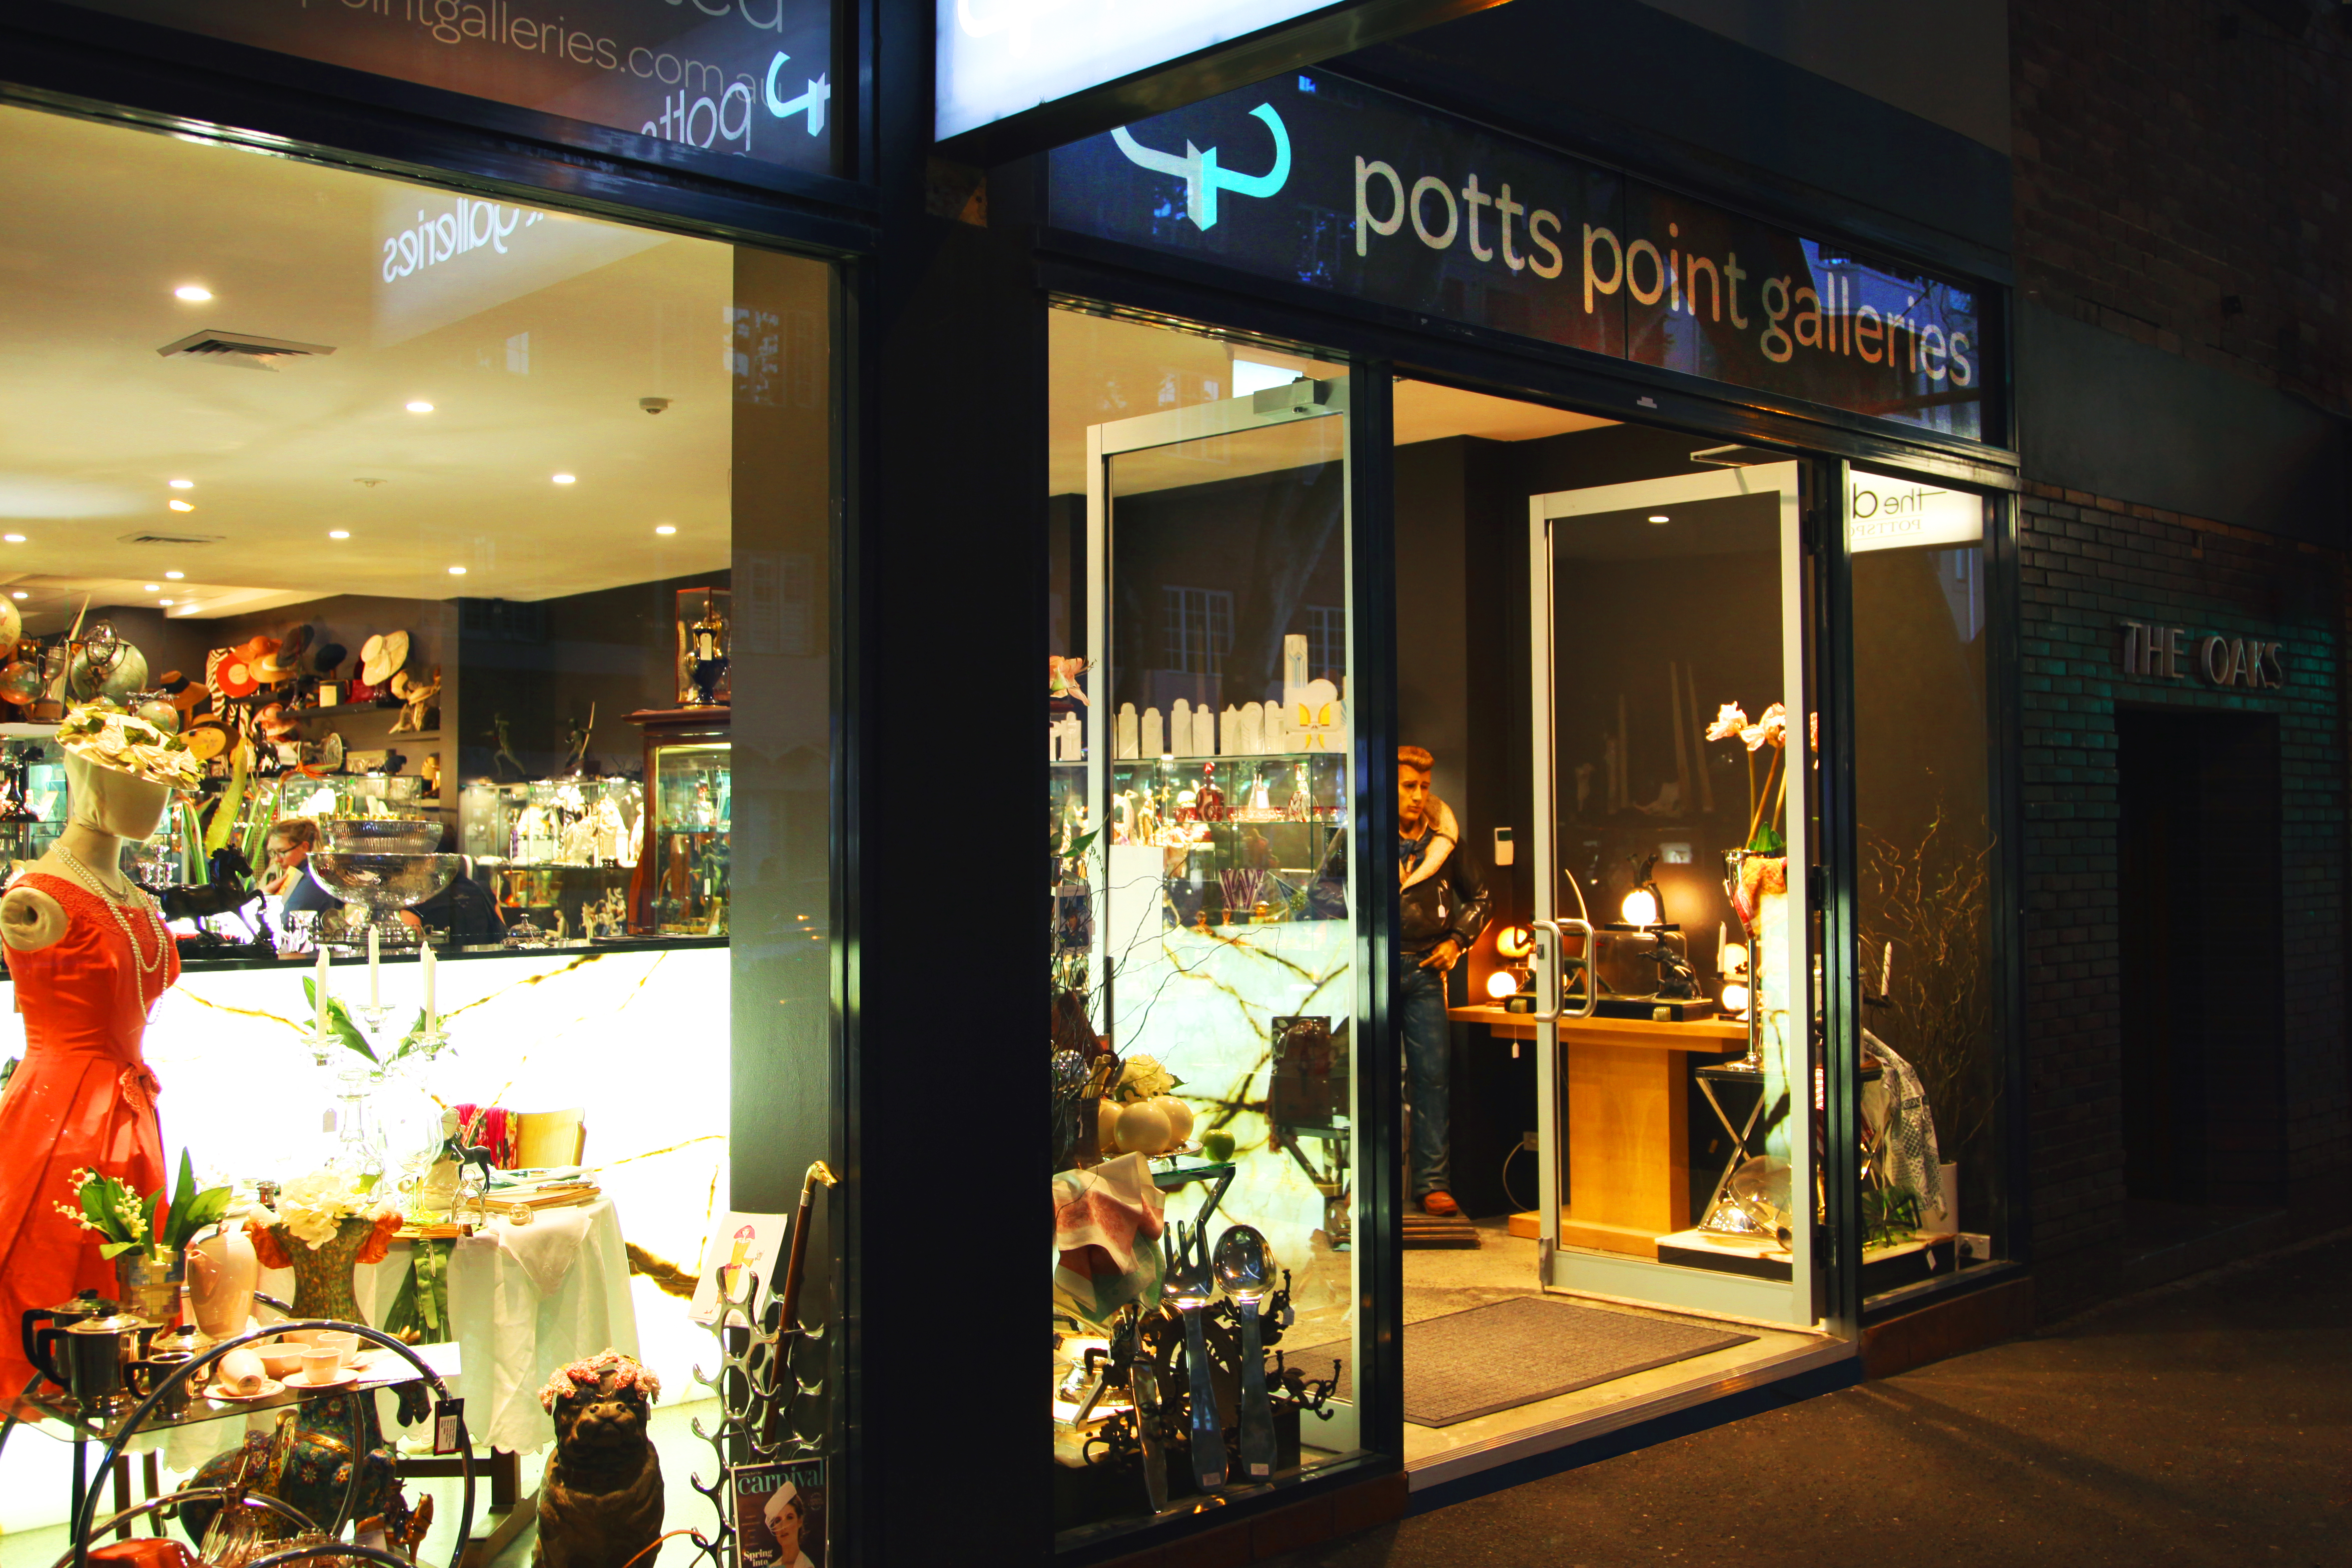 Potts Point Galleries opens doors to local community